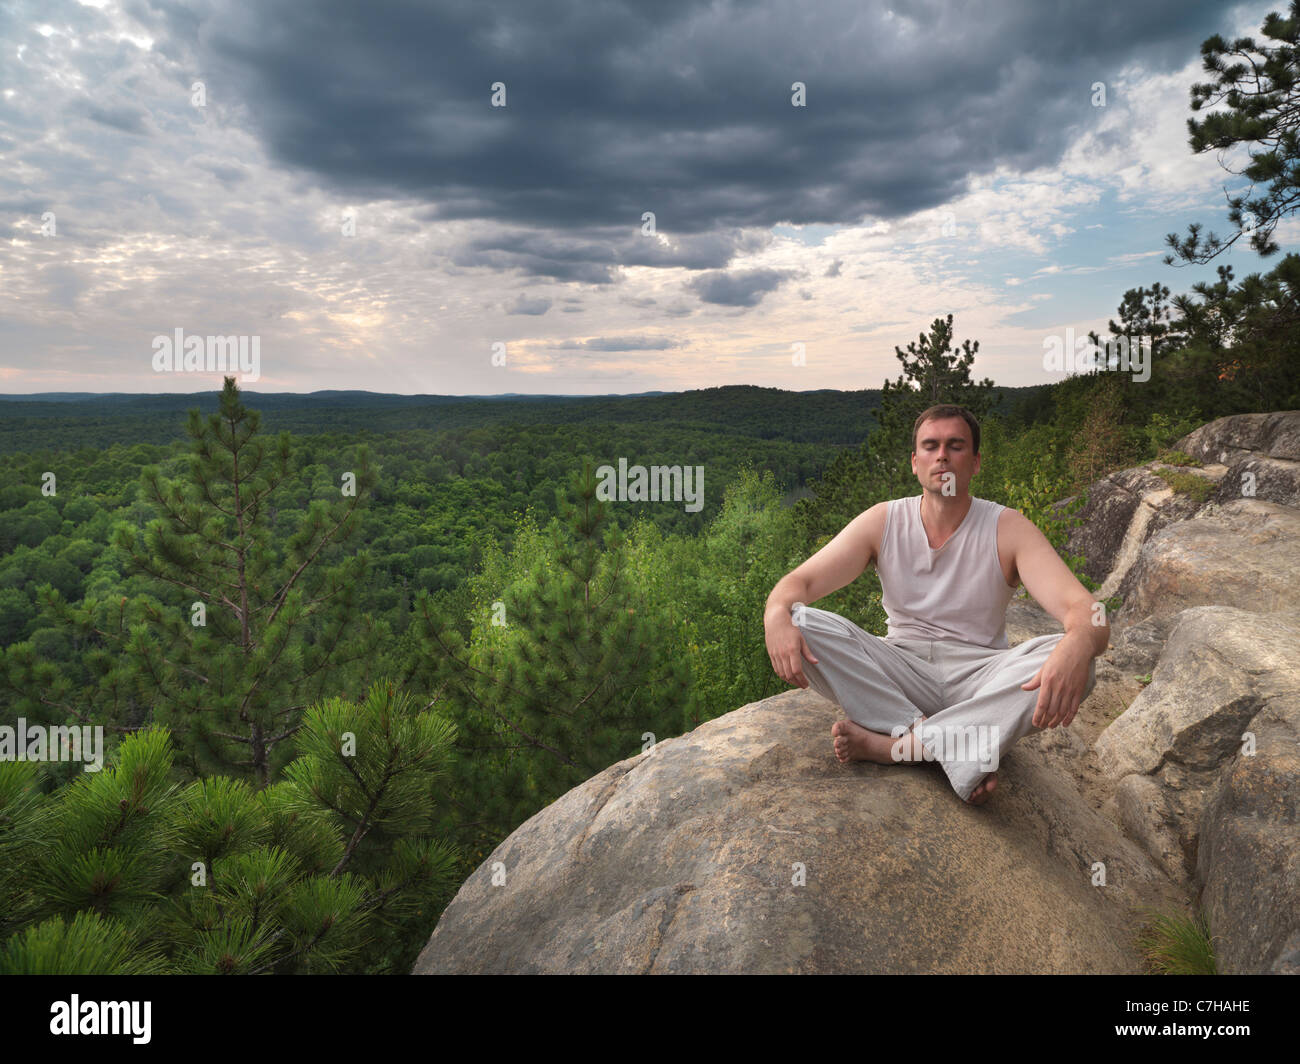 Young man meditating in the nature. Algonquin, Ontario, Canada. - Stock Image